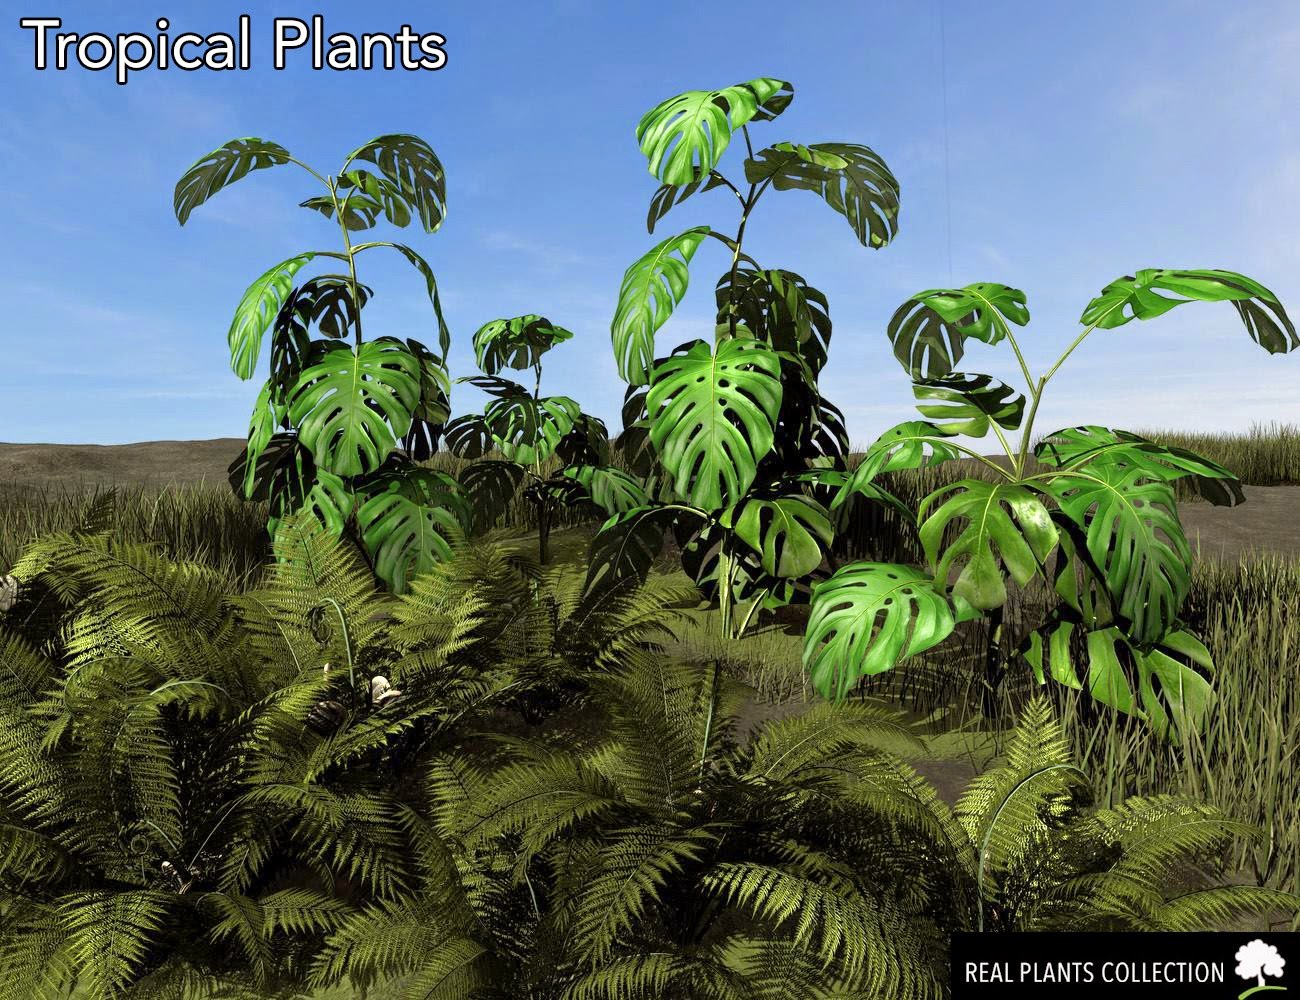 RPC Volume 3: Plantes tropicales